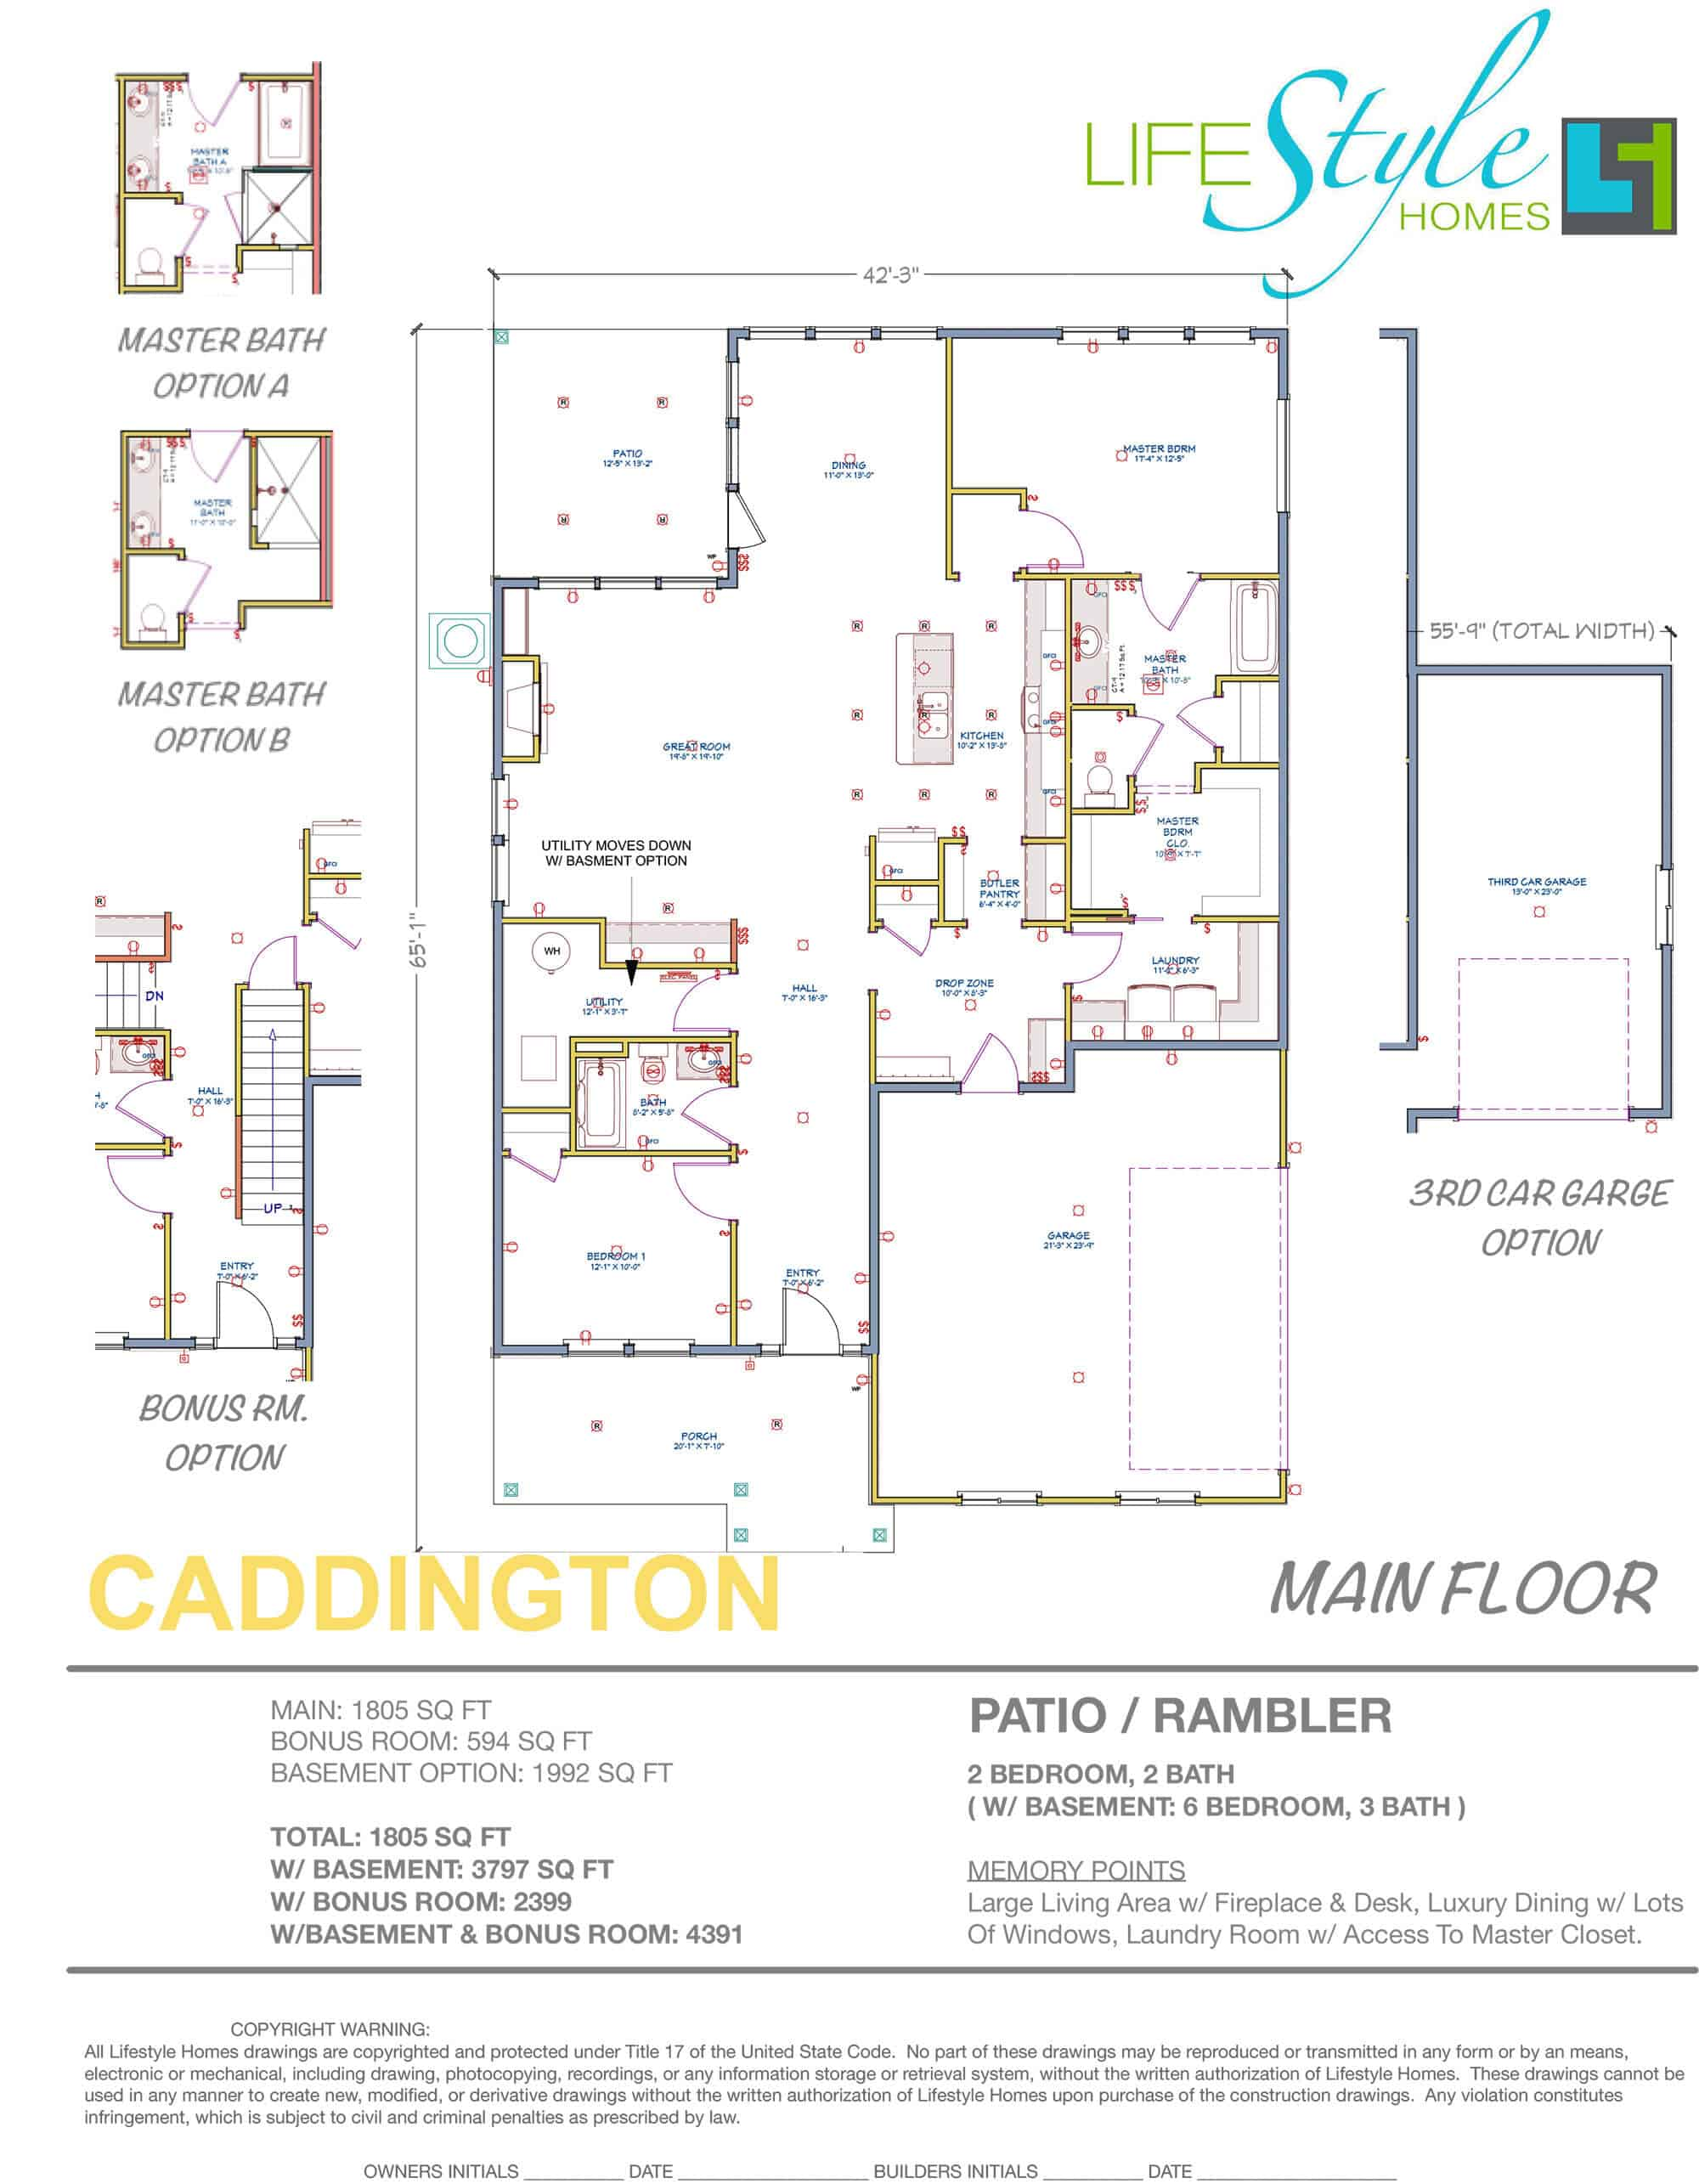 caddington main